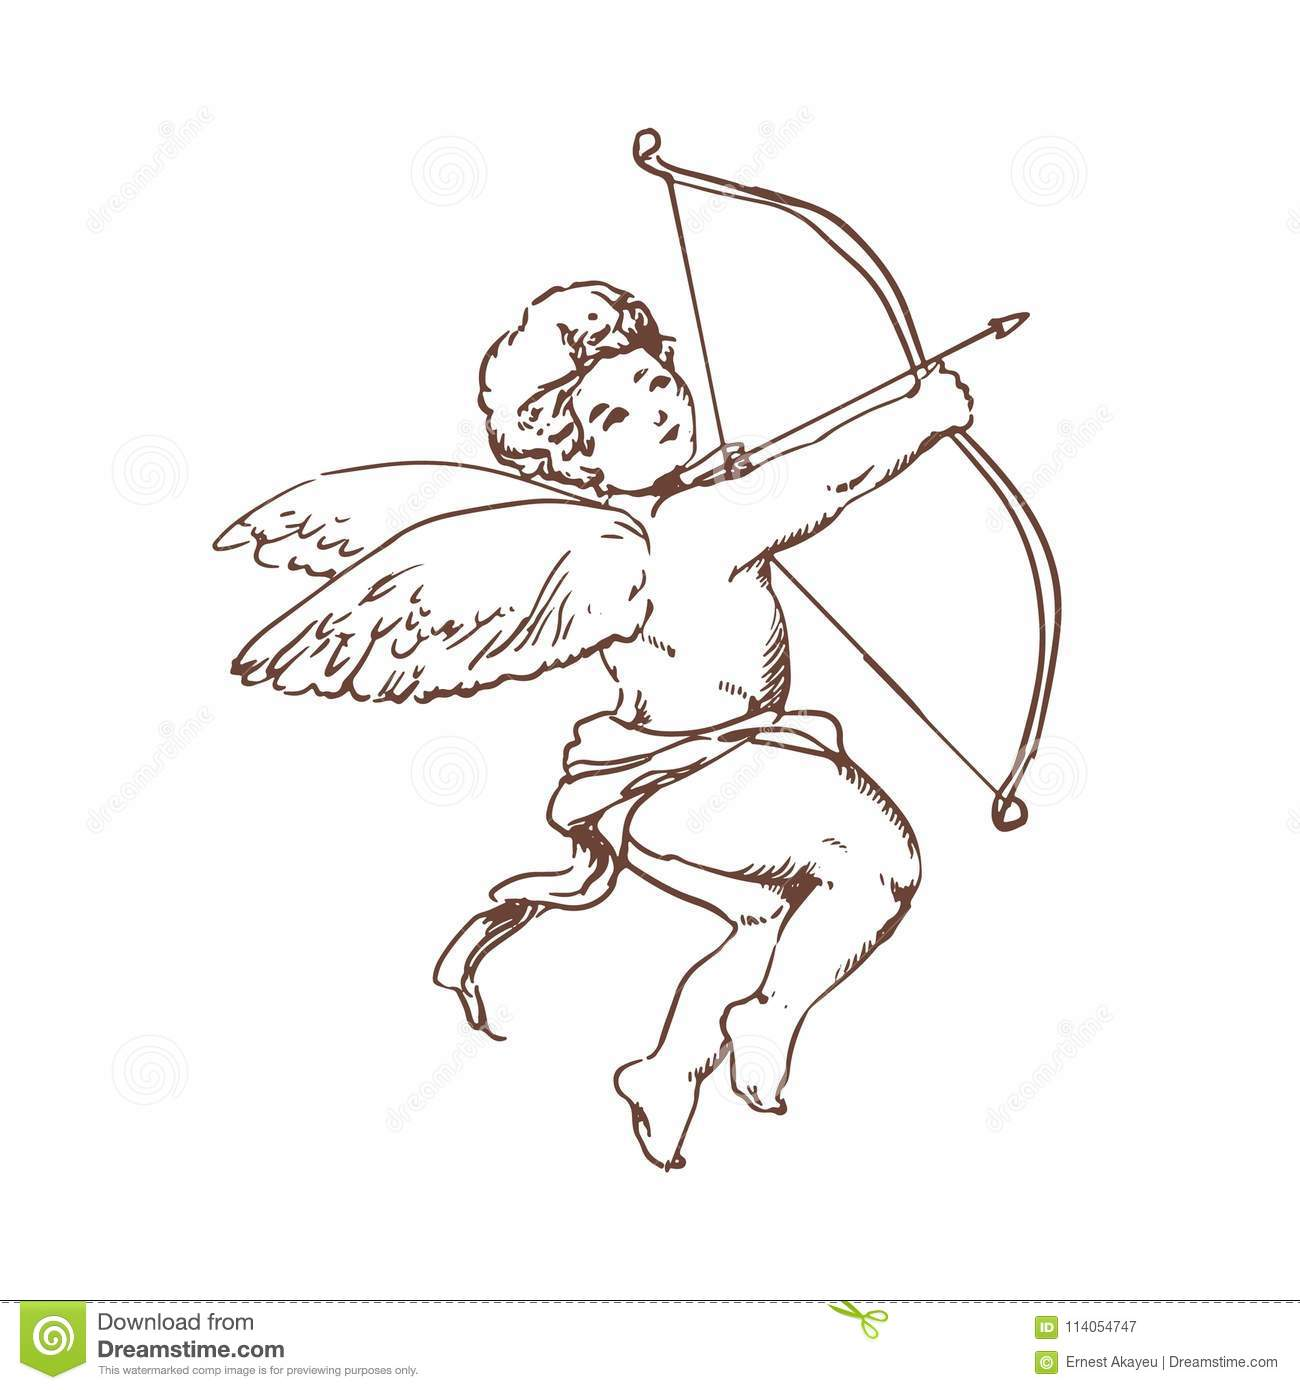 Drawing of adorable Cupid with bow aiming or shooting arrow isolated on white background. God of romantic love, passion